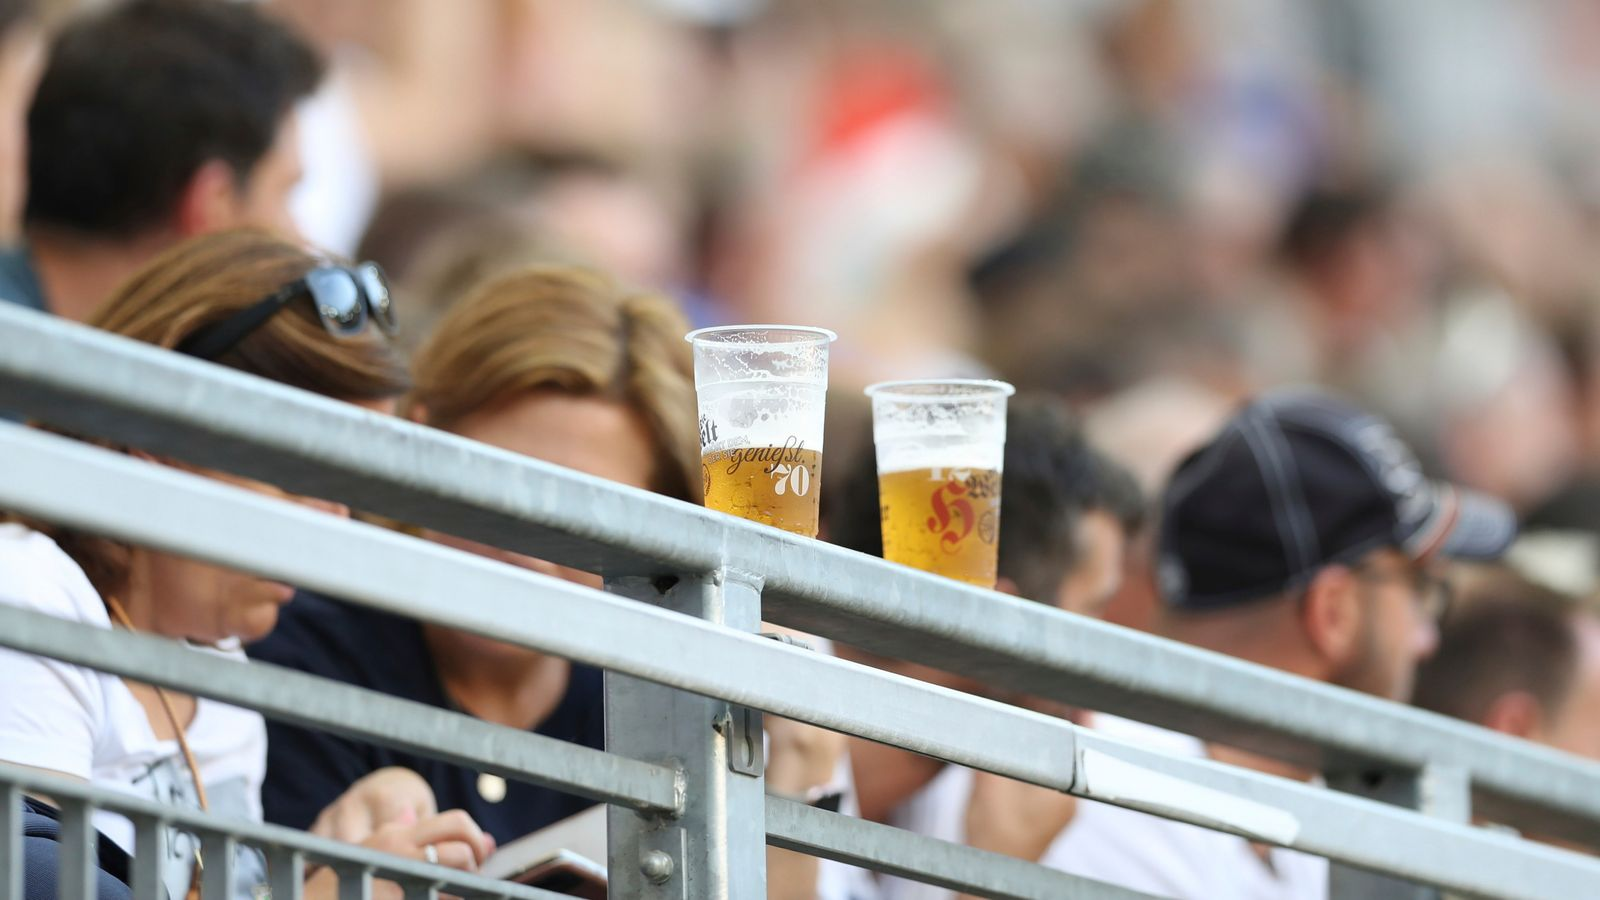 Football fans in the UK have not been able to drink alcohol in their seats since 1985